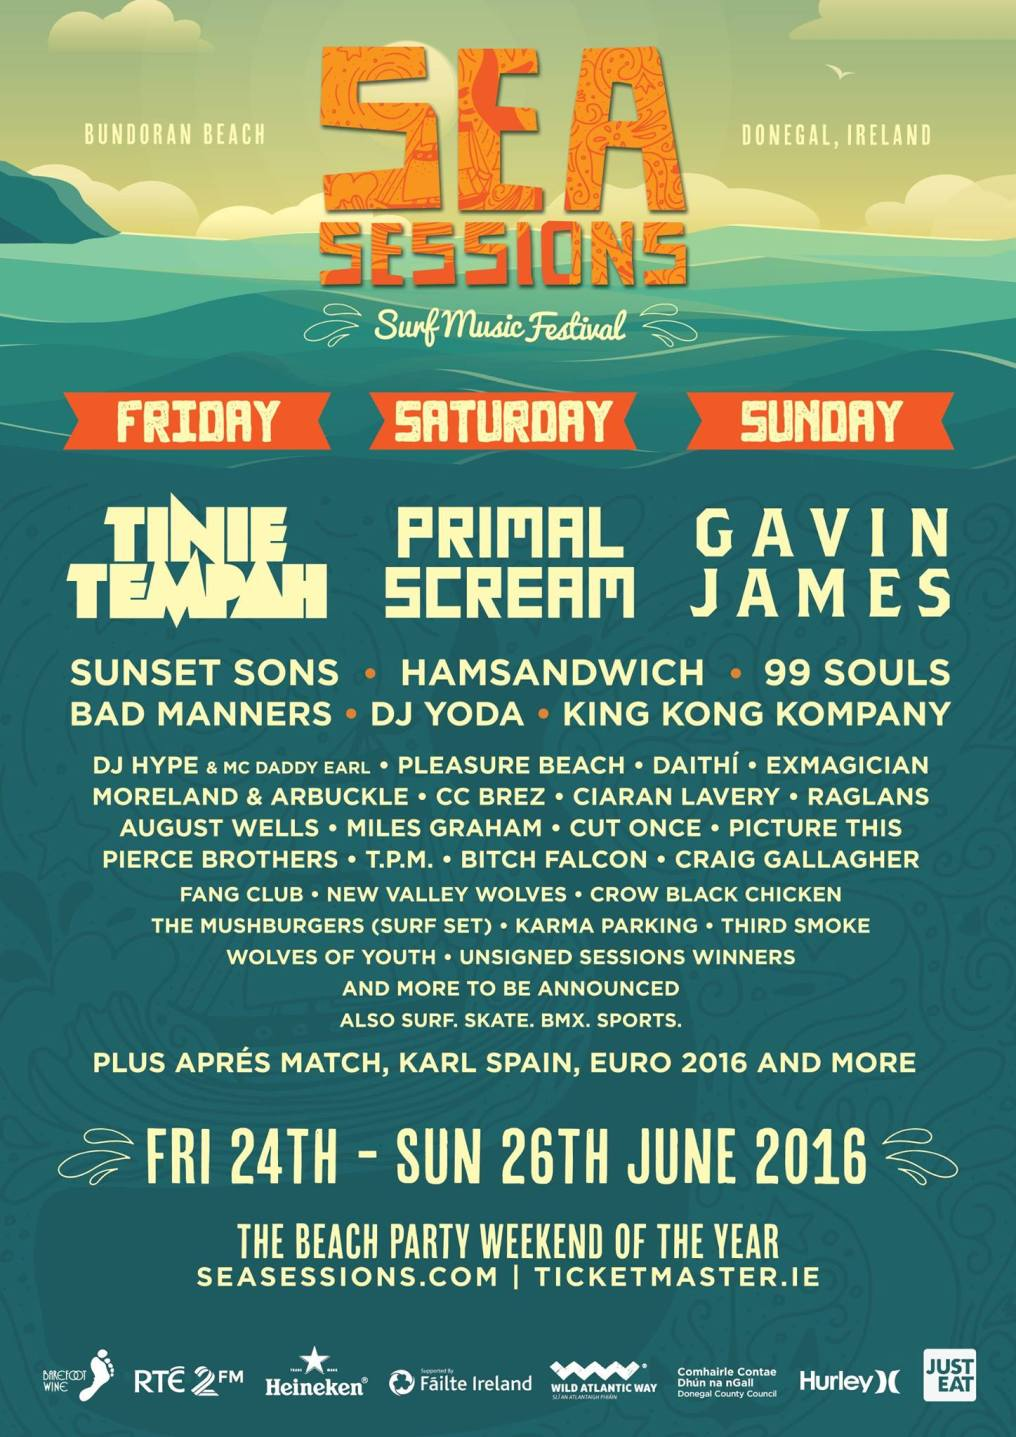 Sea Sessions music & surf festival